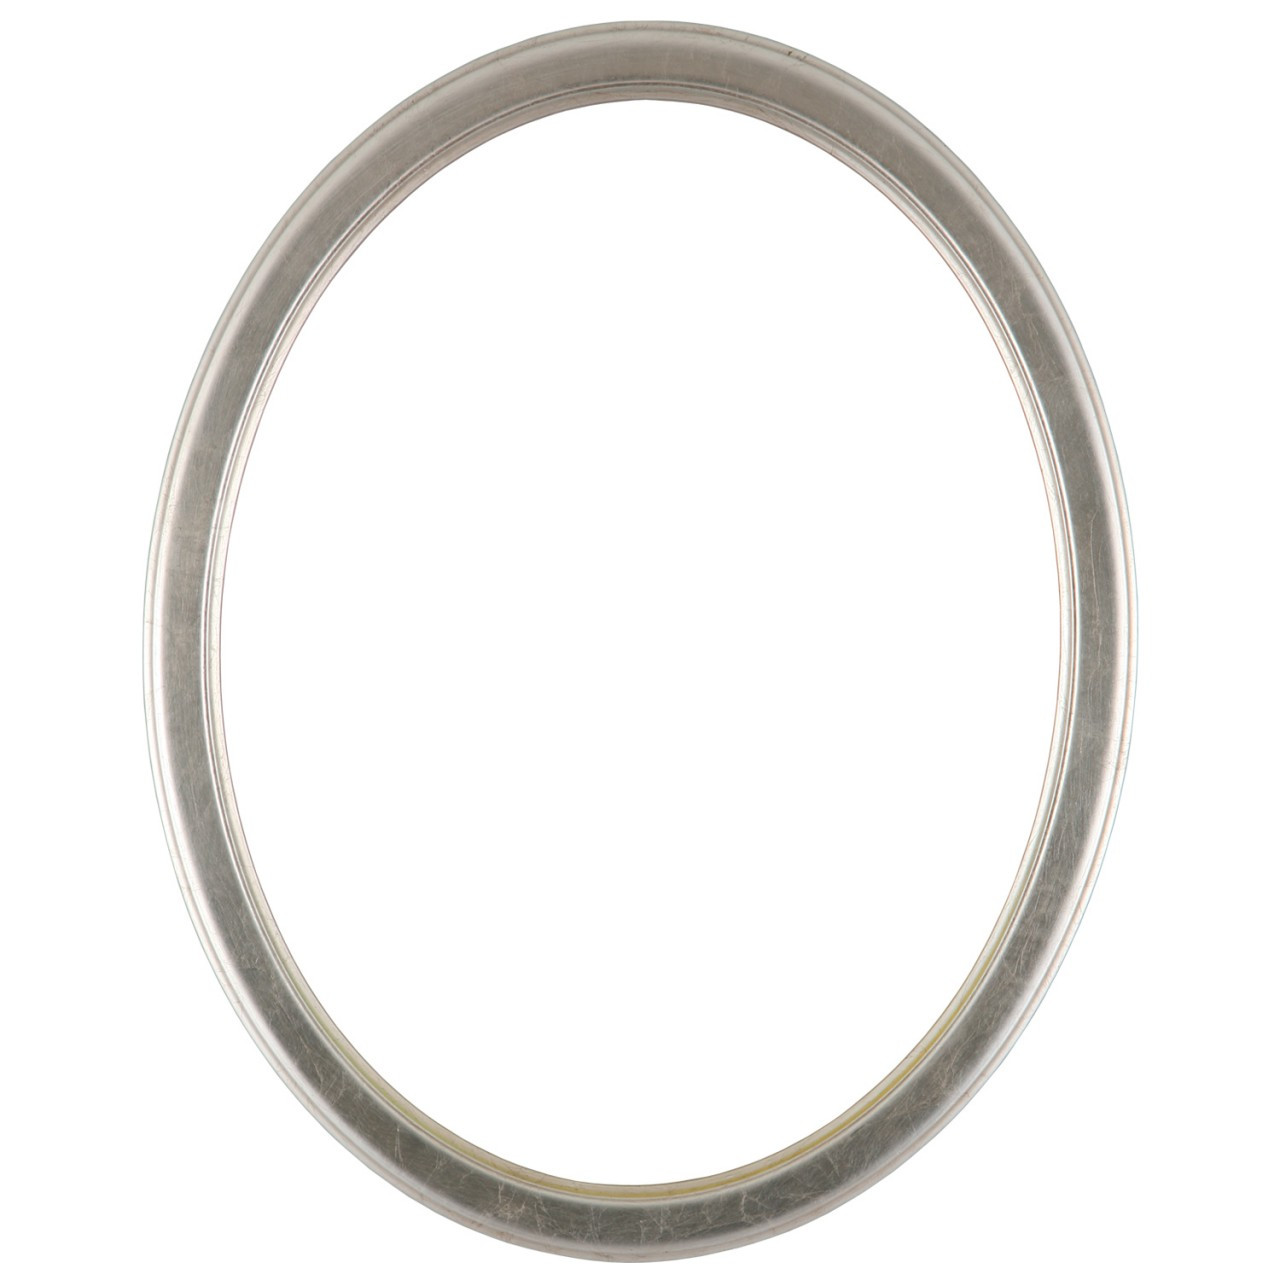 4f821c808d3e Oval Frame in Silver Leaf Finish with Brown Antique